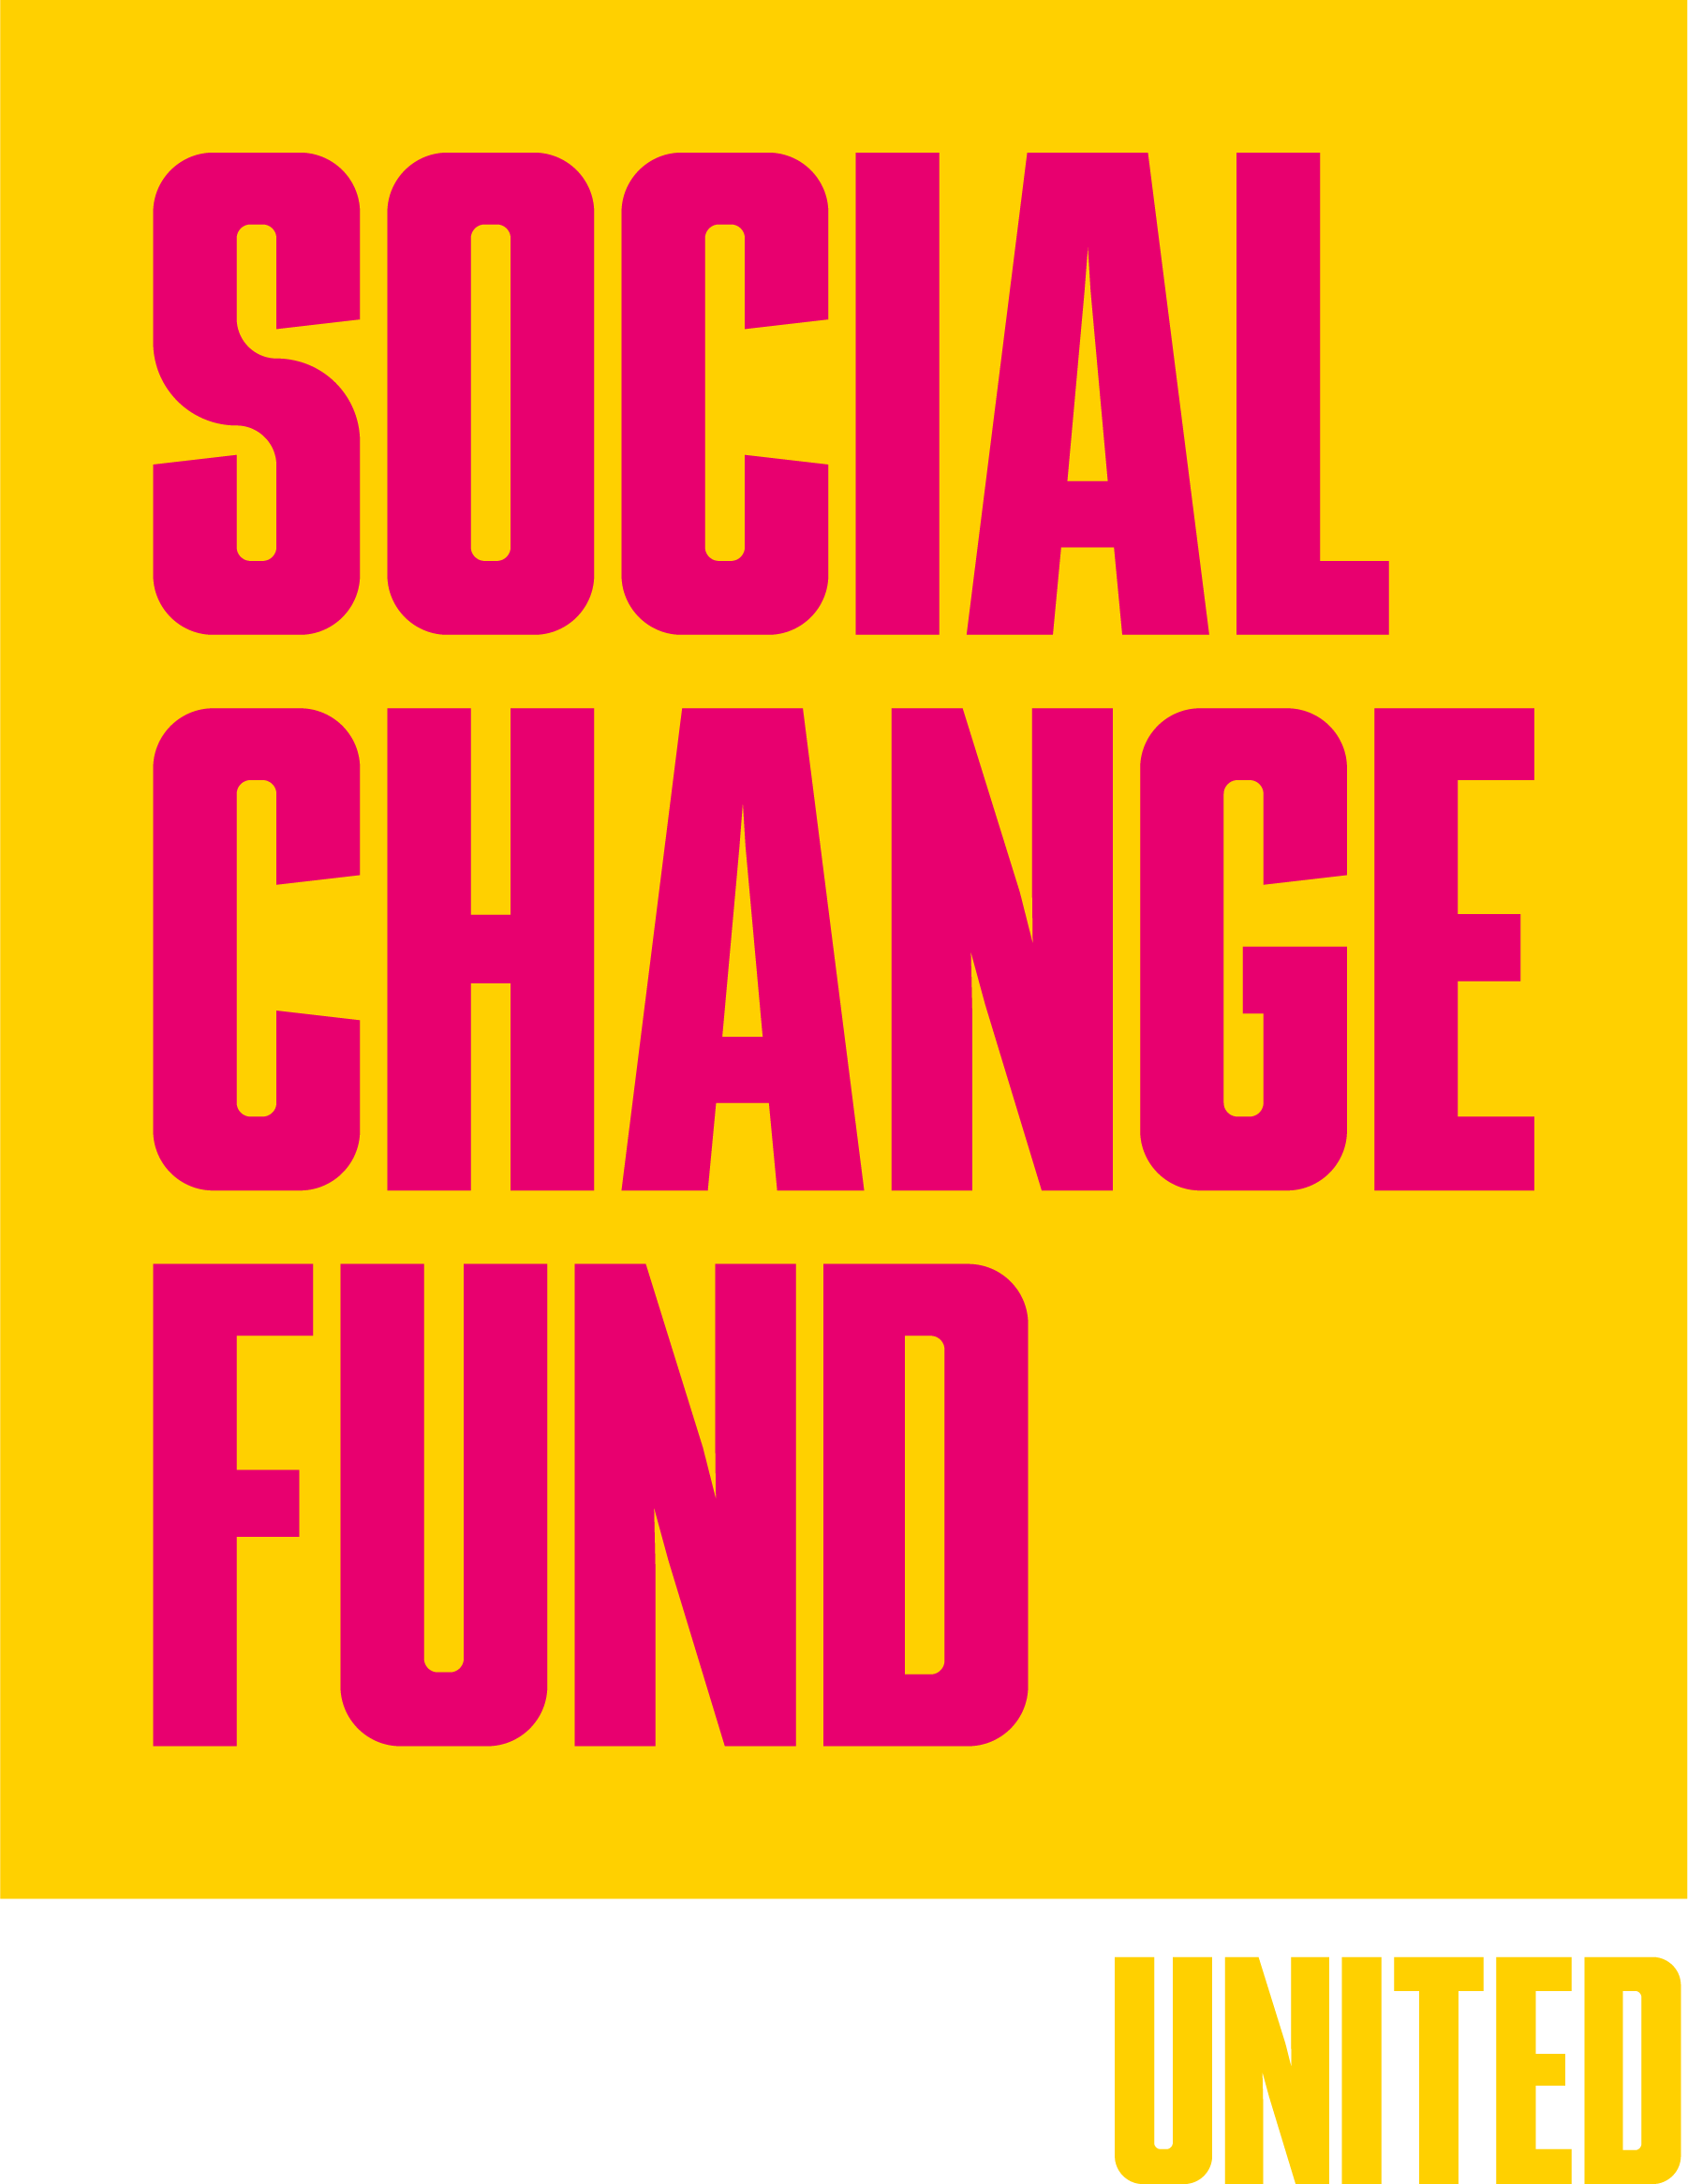 The Social Change Fund